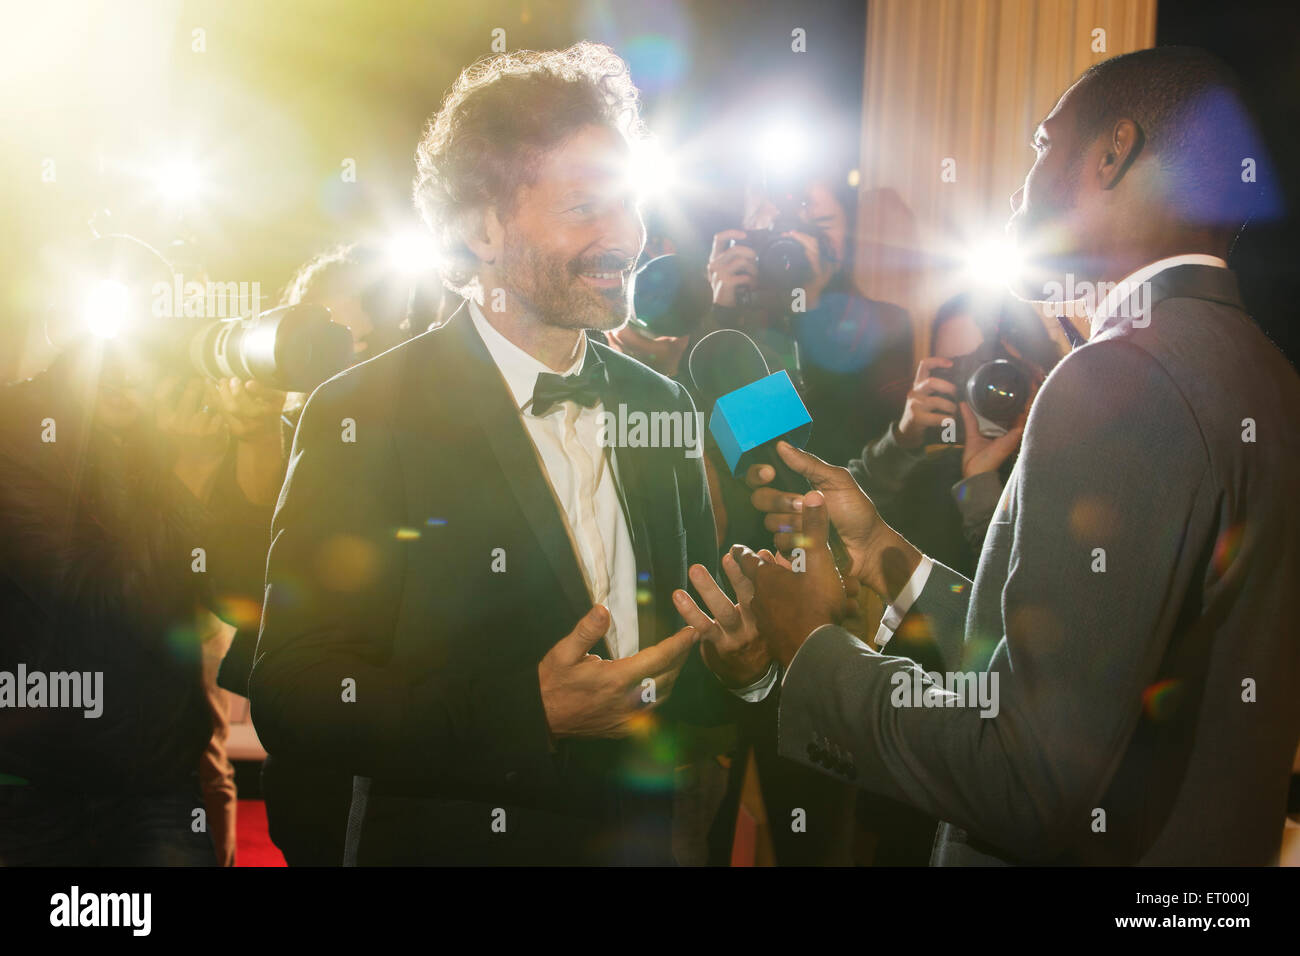 Celebrity being interviewed and photographed by paparazzi at event Stock Photo